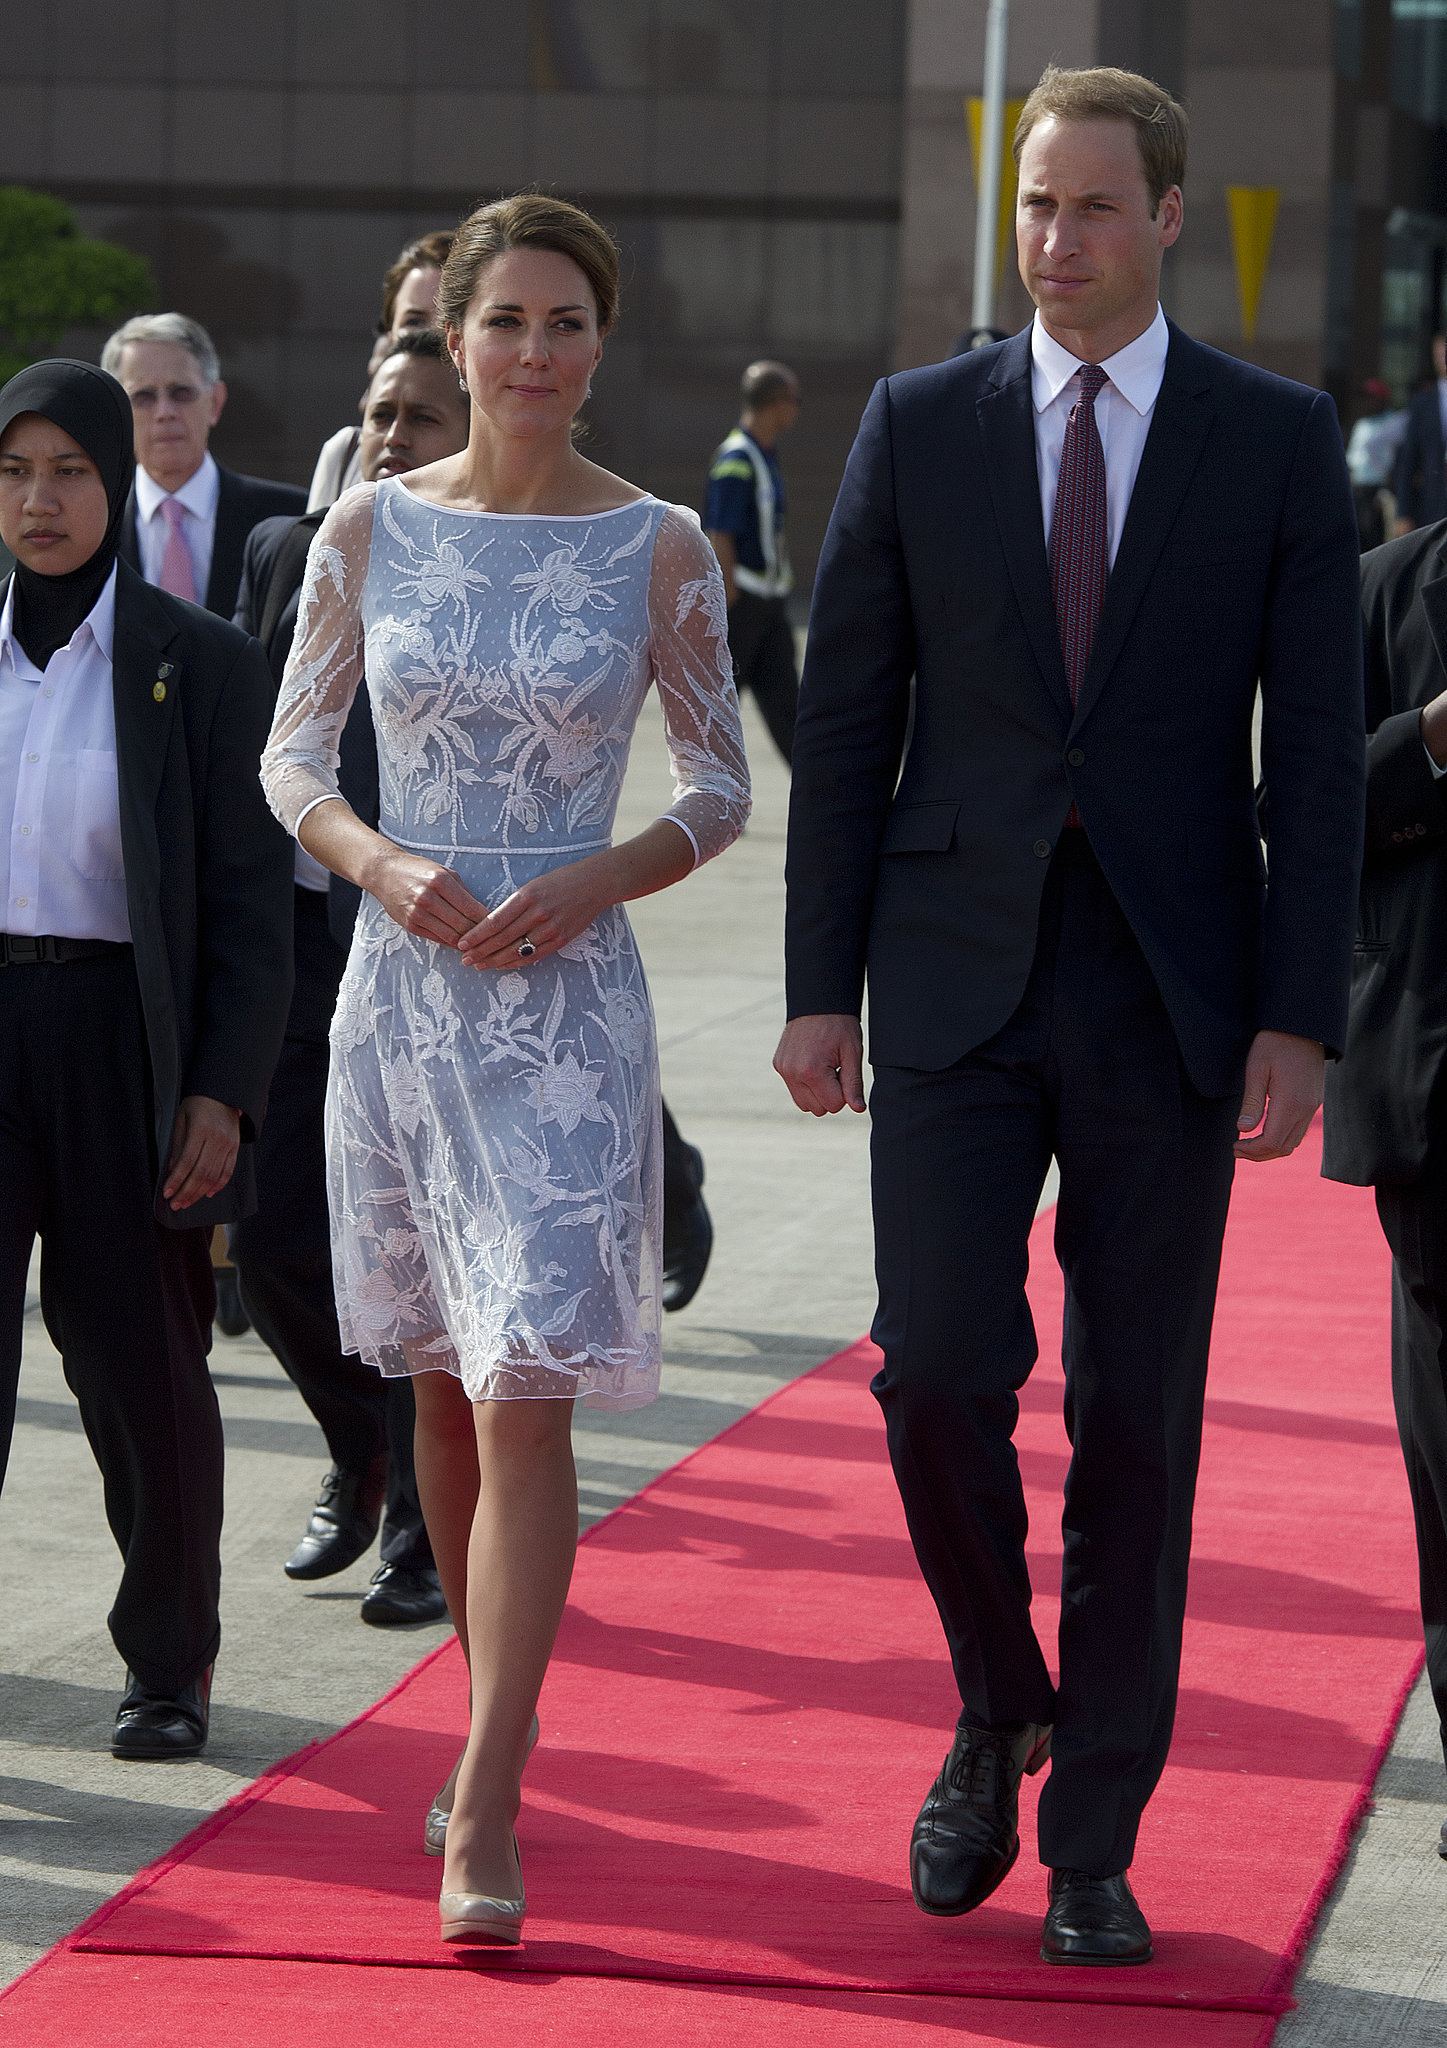 In September 2012, Kate  and William looked stylish as they left Kuala Lumpur, Malaysia, during their official royal trip.